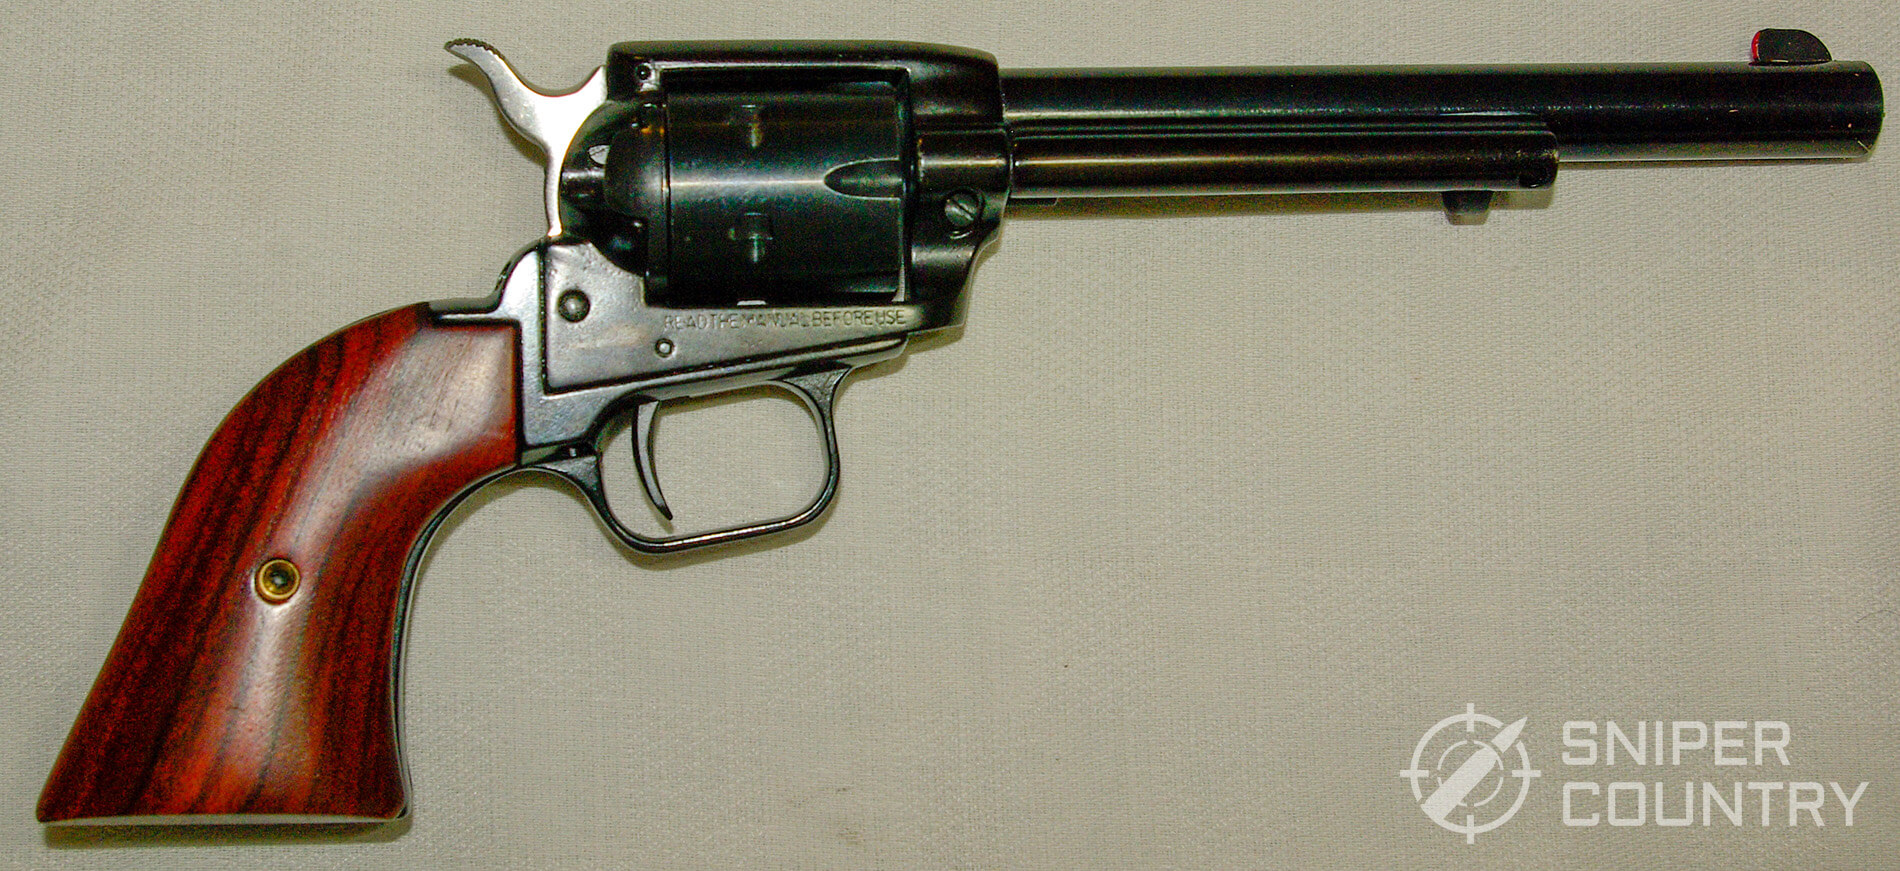 Heritage Arms Rough Rider Right Side